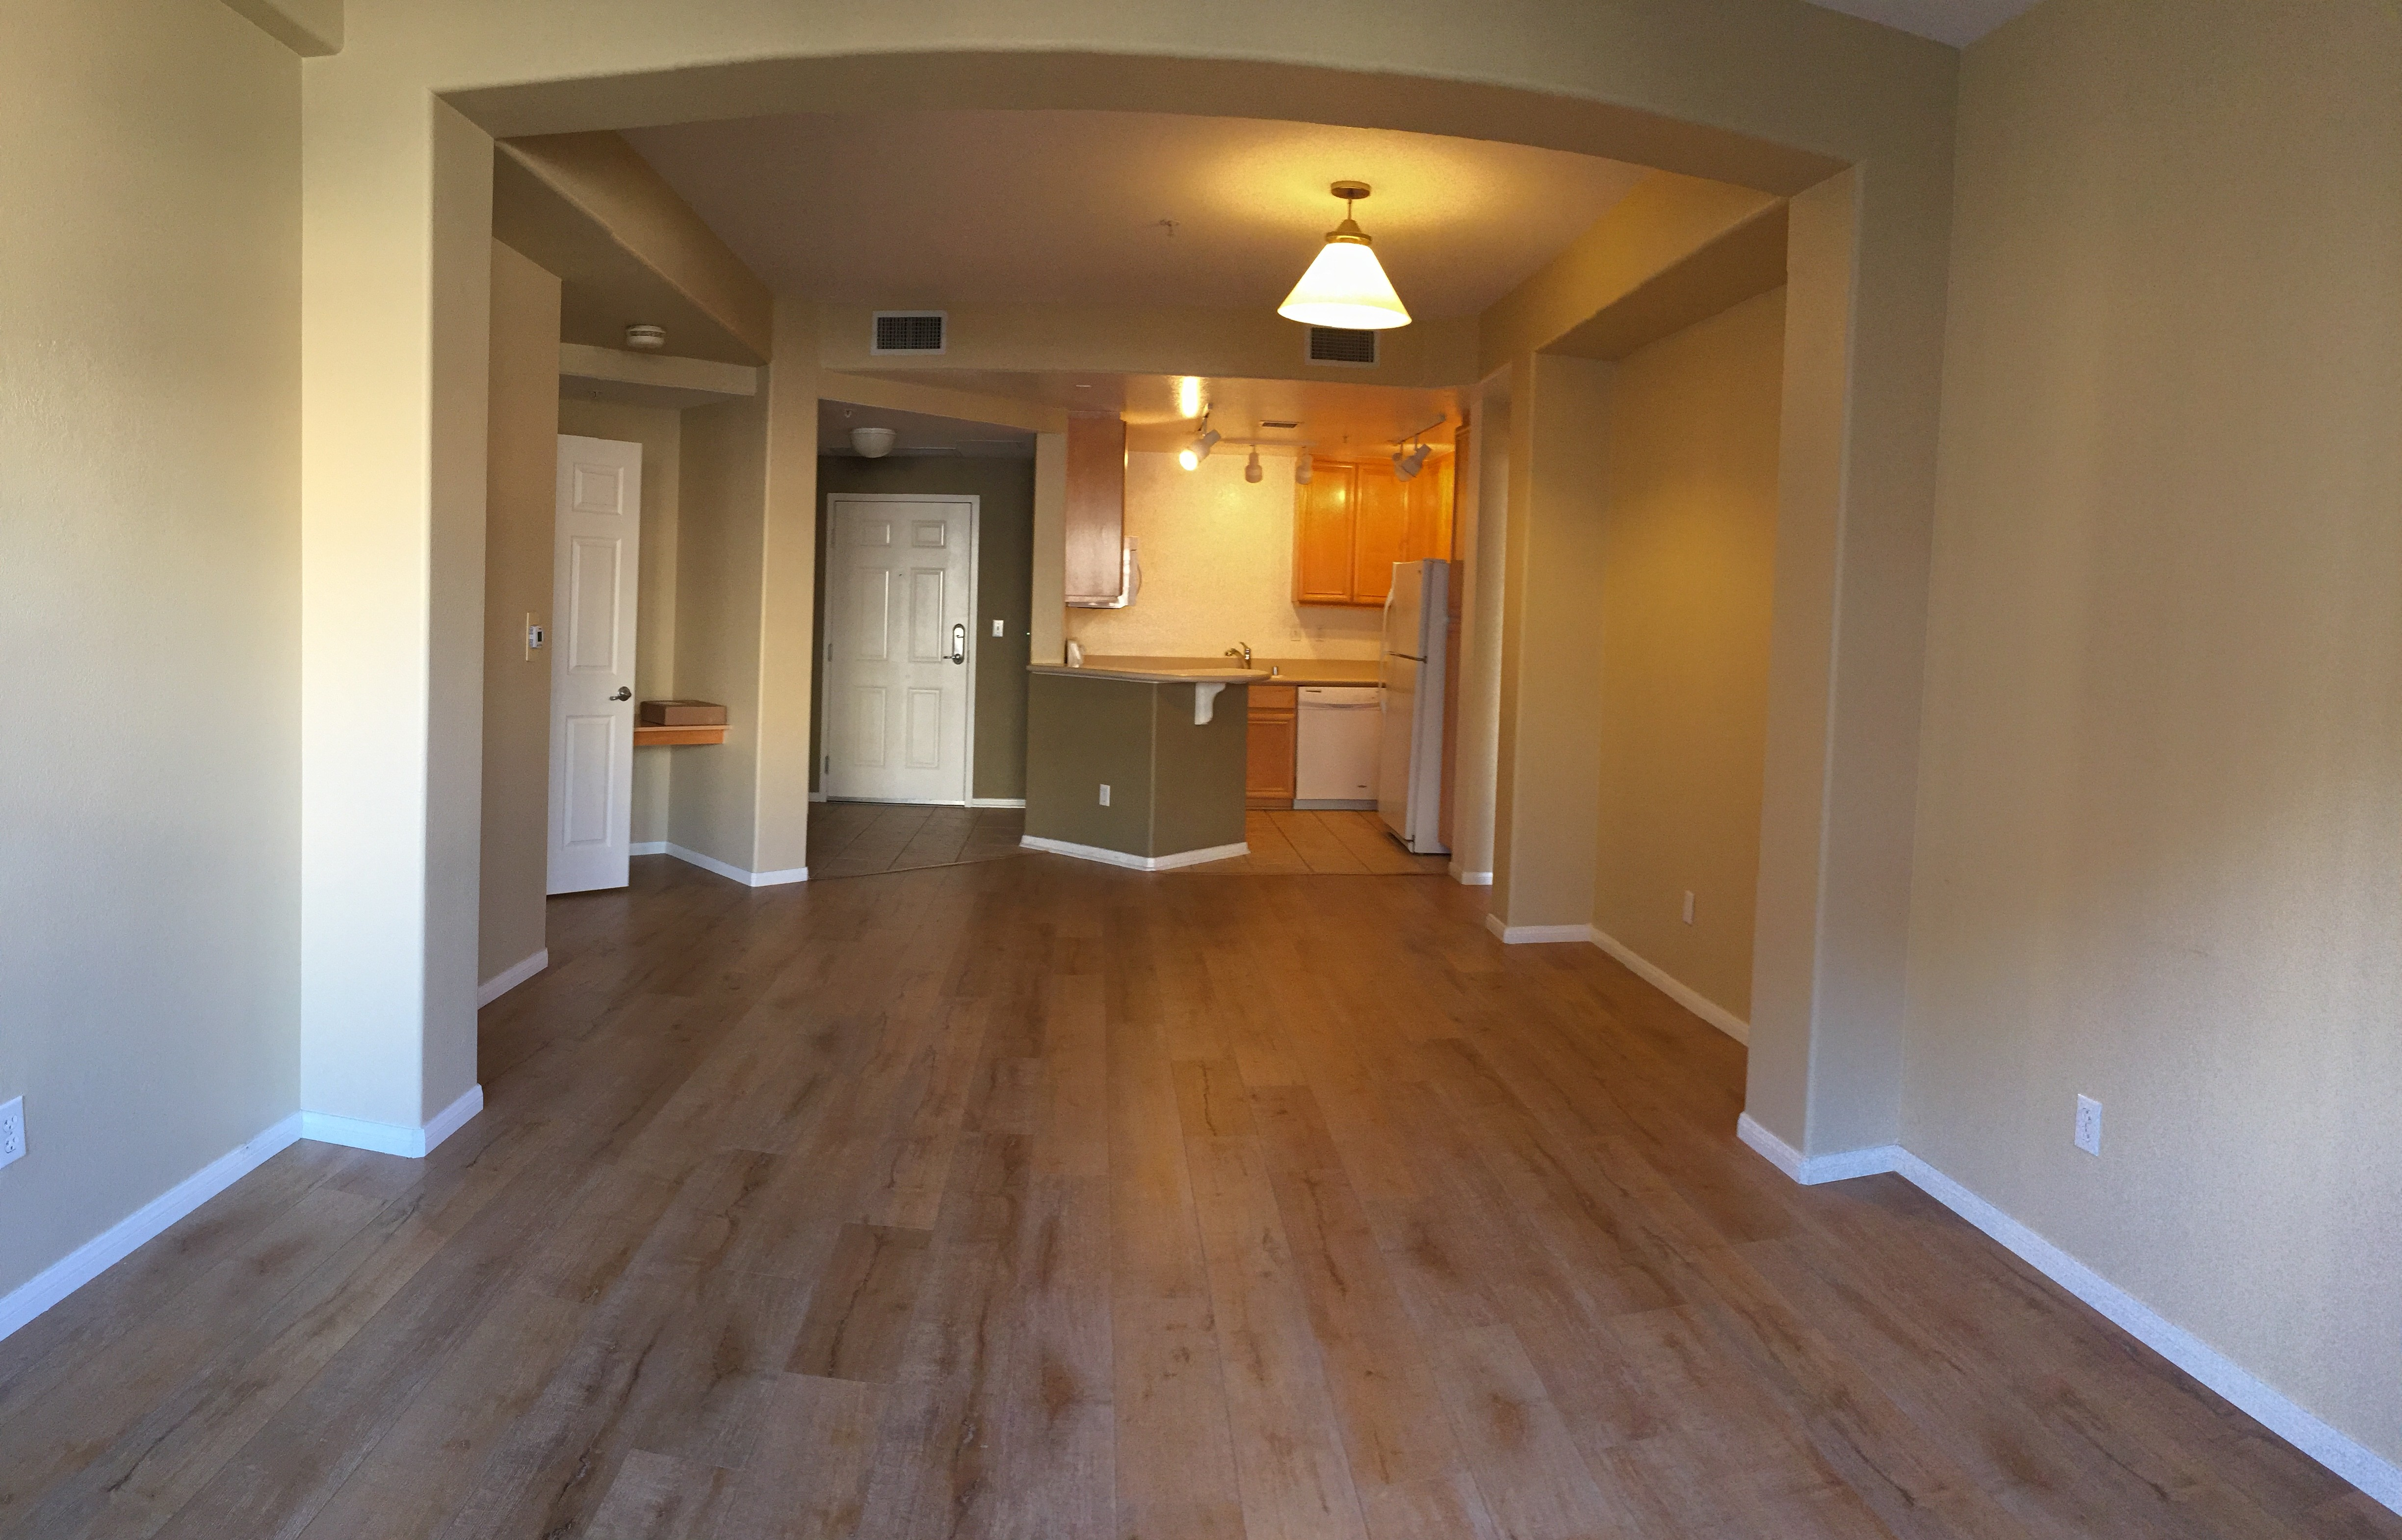 350 k street 415 san diego ca 92101 2 bedroom apartment for rent